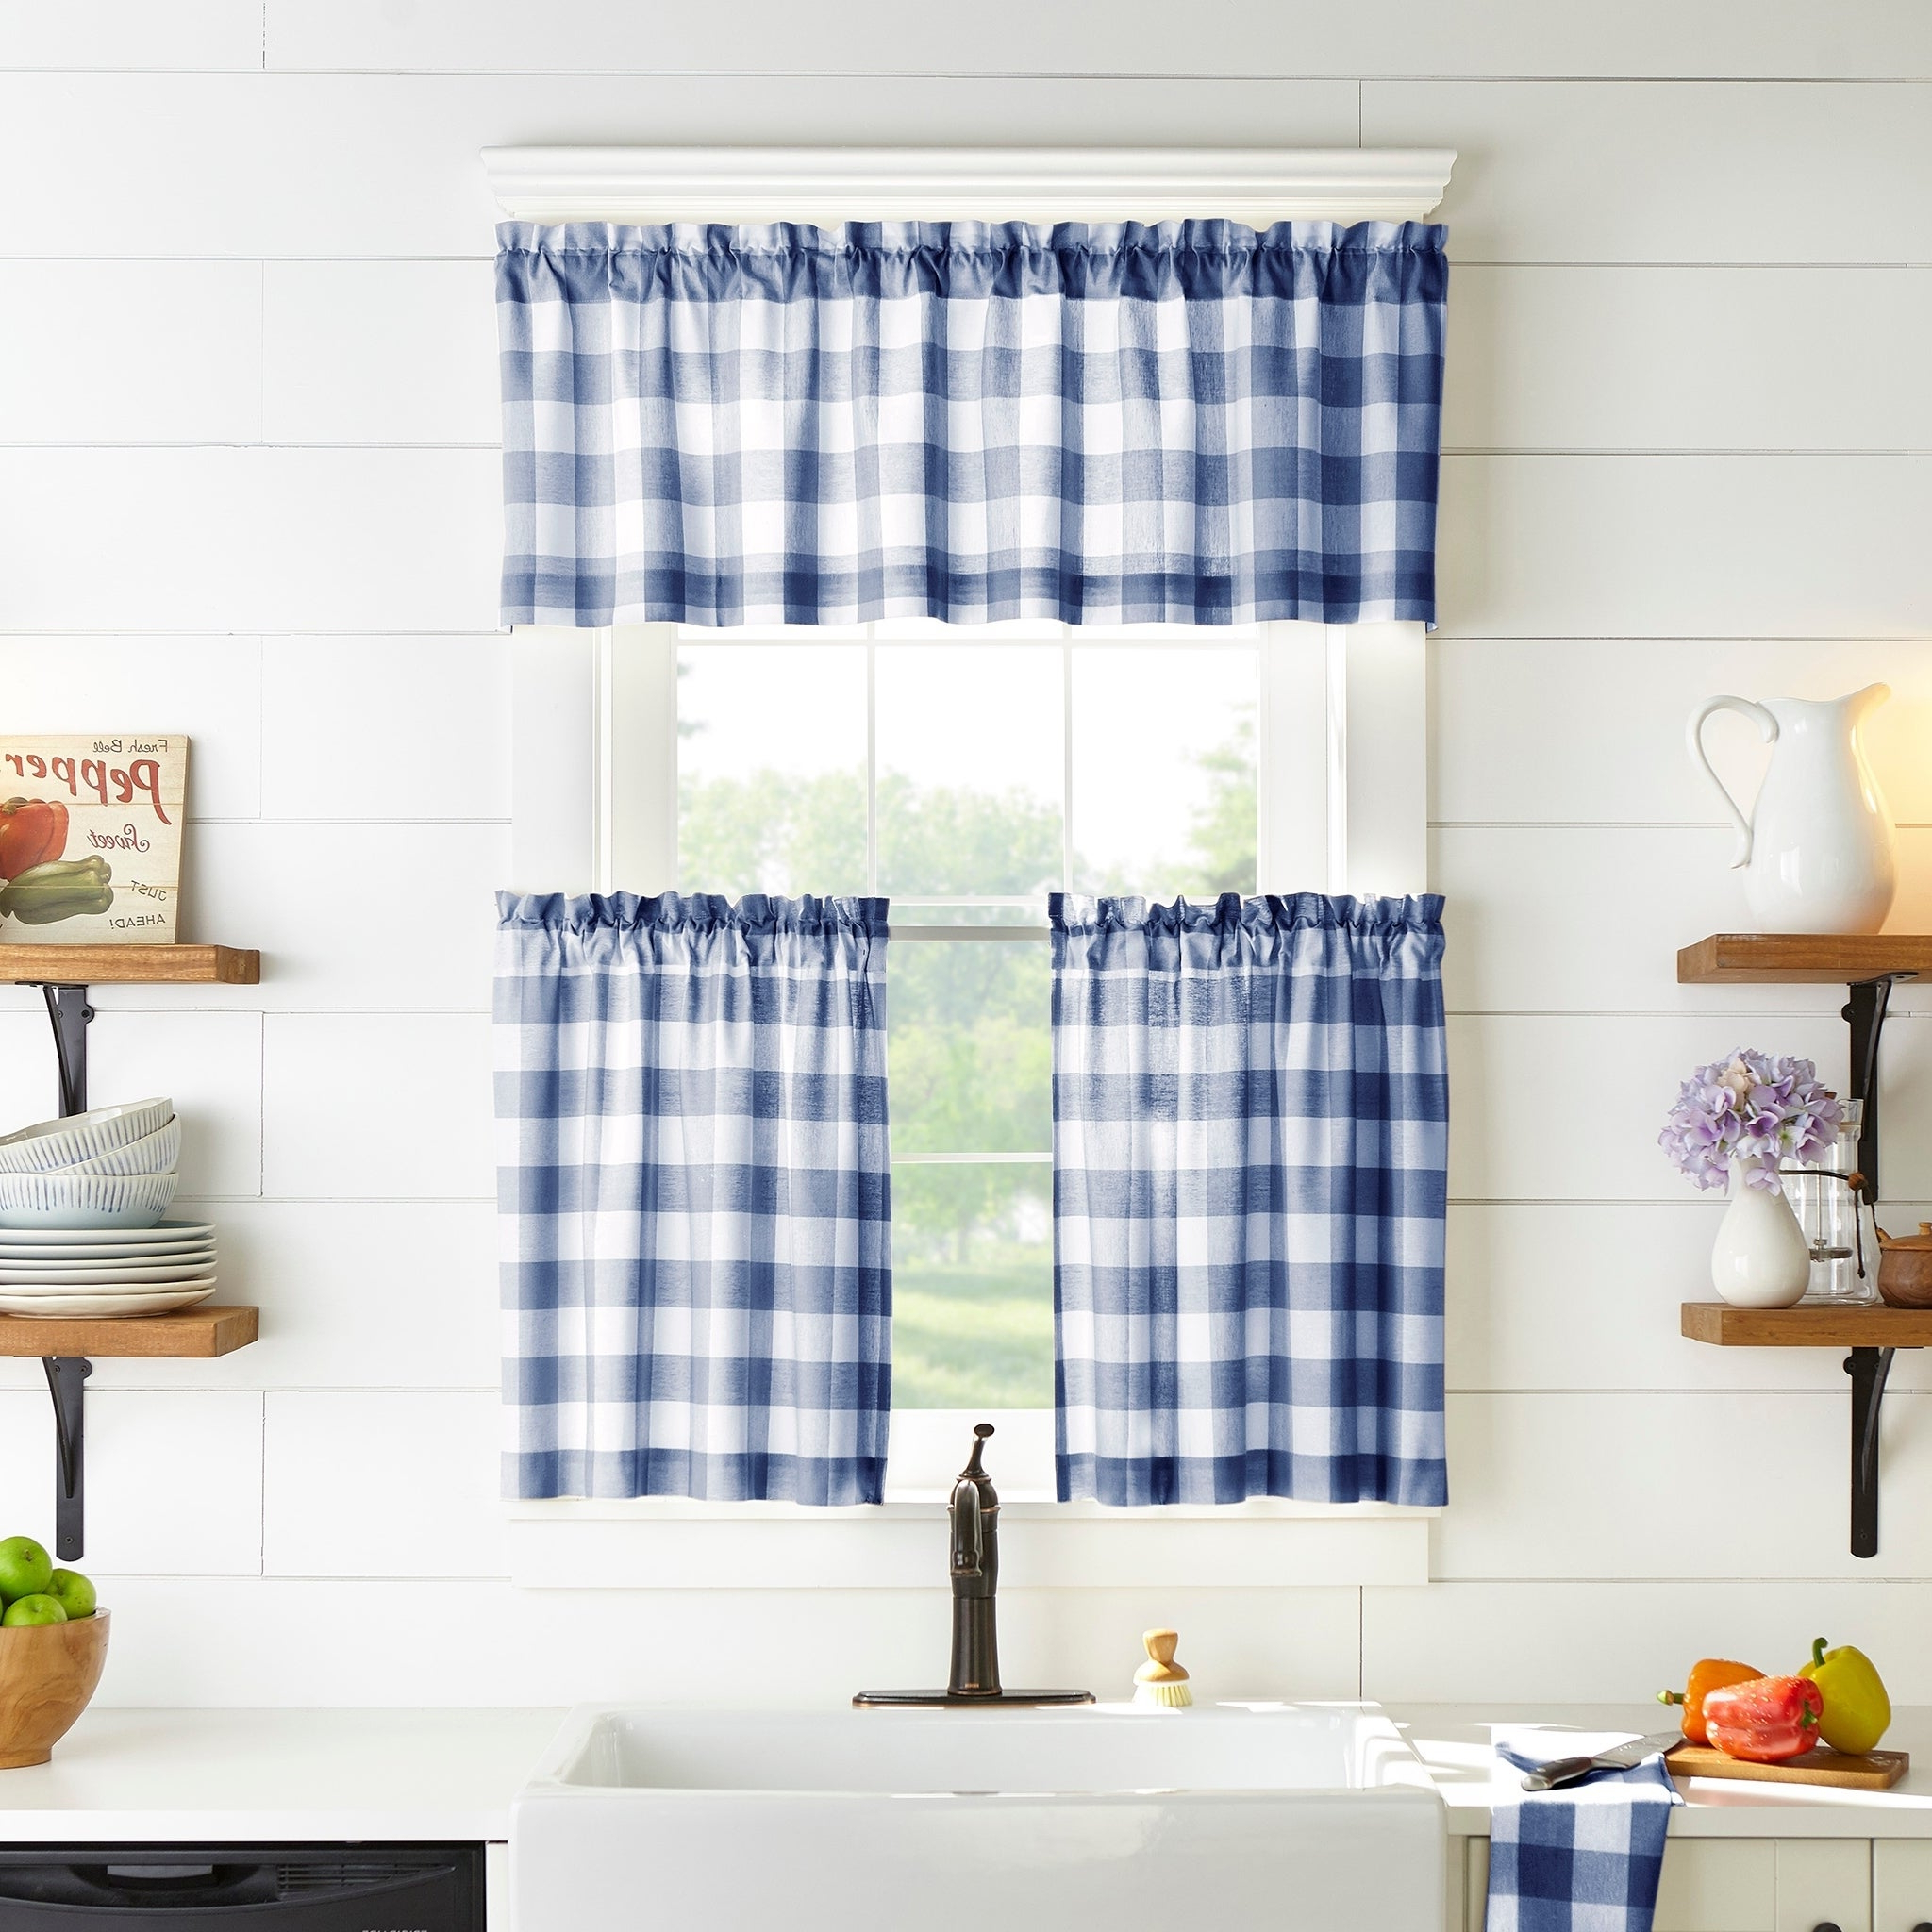 2021 The Gray Barn Emily Gulch Buffalo Check Kitchen Window Tier Set Inside Lodge Plaid 3 Piece Kitchen Curtain Tier And Valance Sets (View 19 of 20)